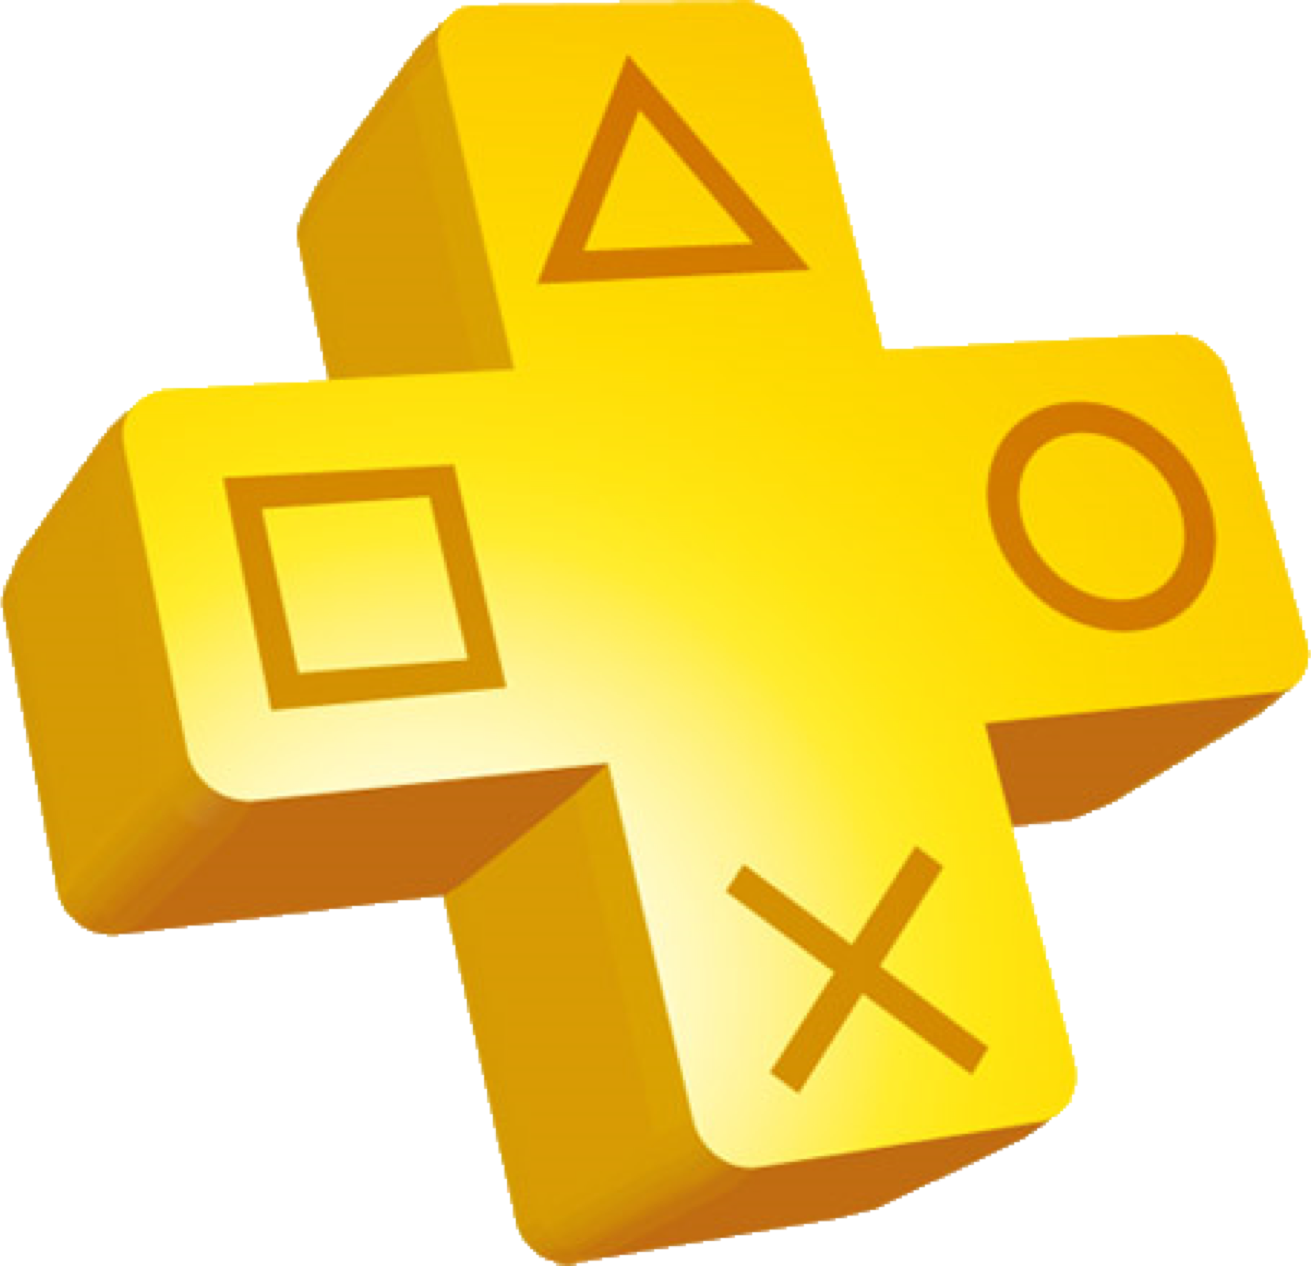 Ps console features games. Gaming clipart playstation